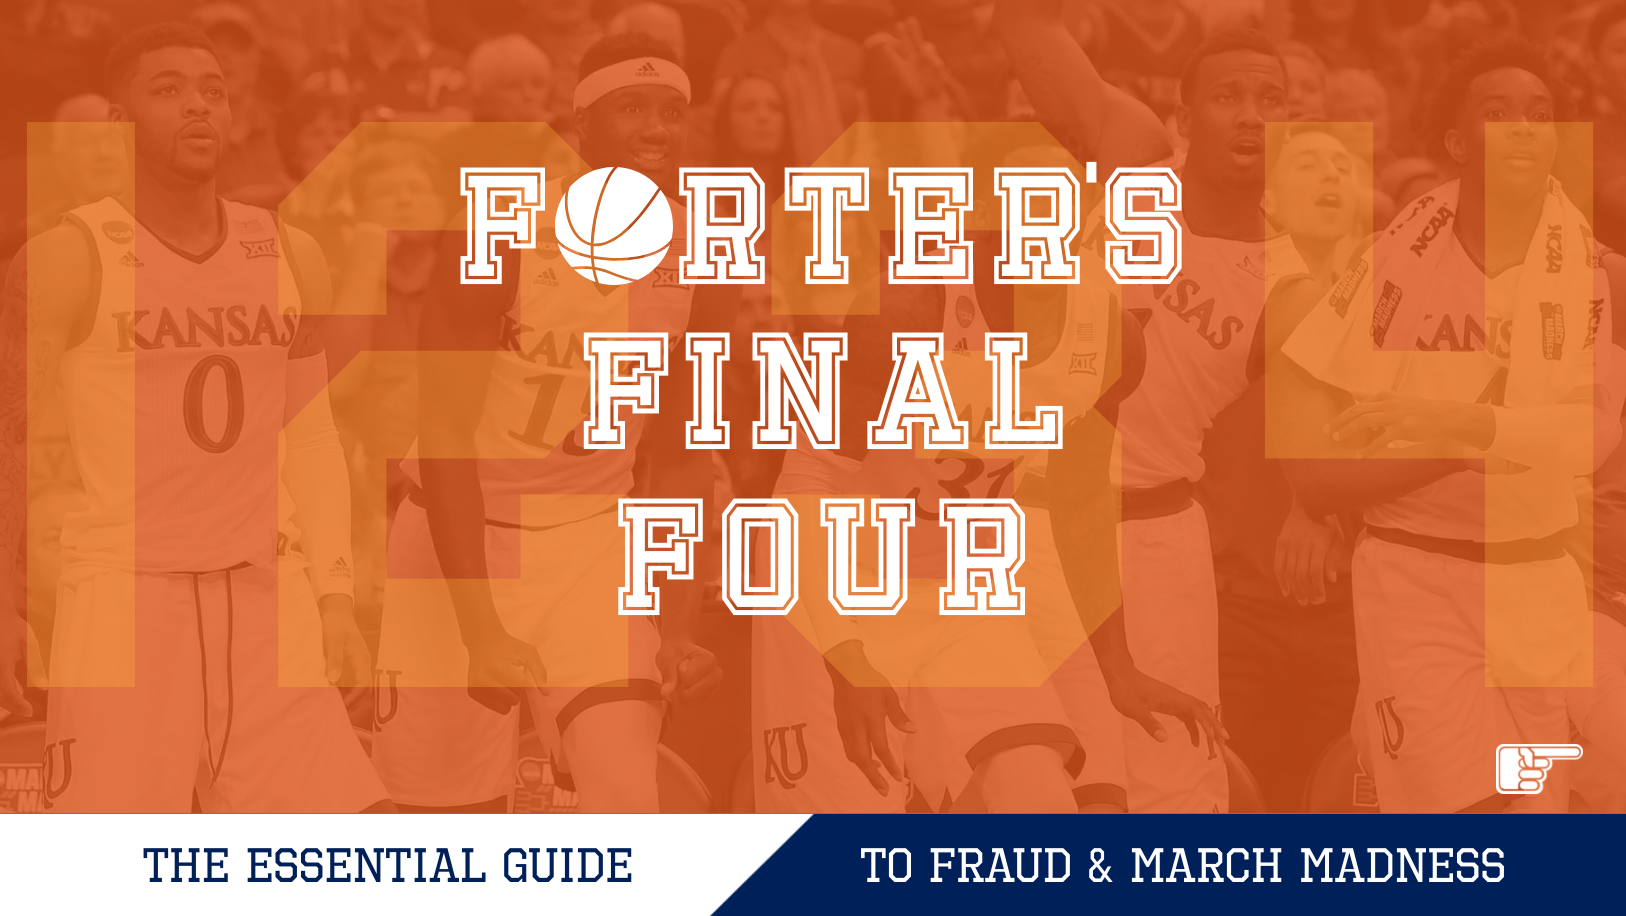 Forter's Final Four: The Essential Guide to Fraud & March Madness